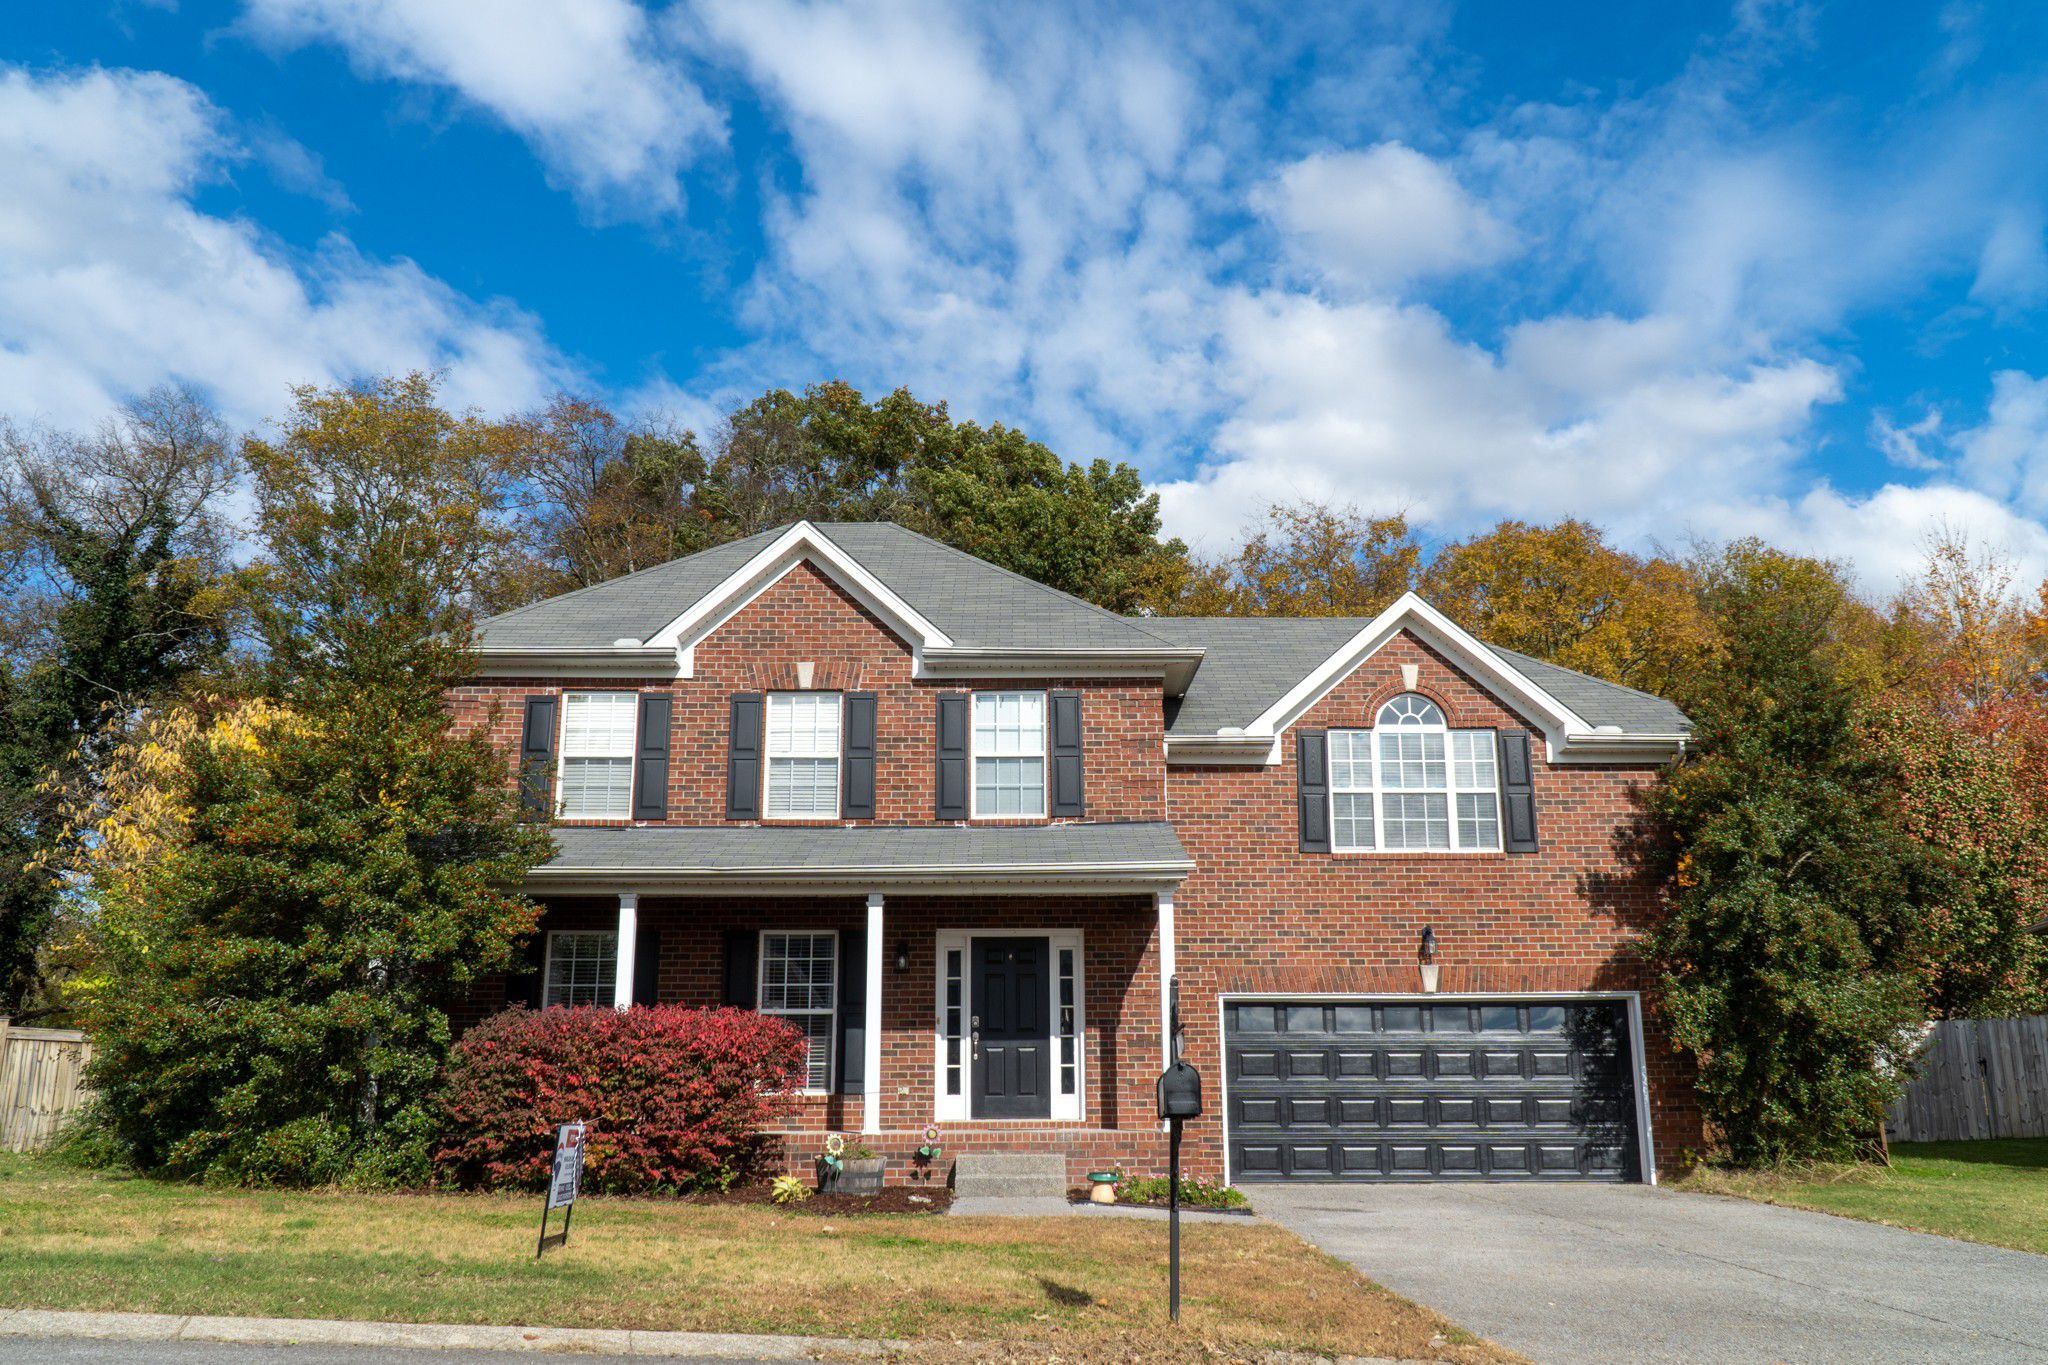 Walton Trace Homes For Sale In Sumner County Tn